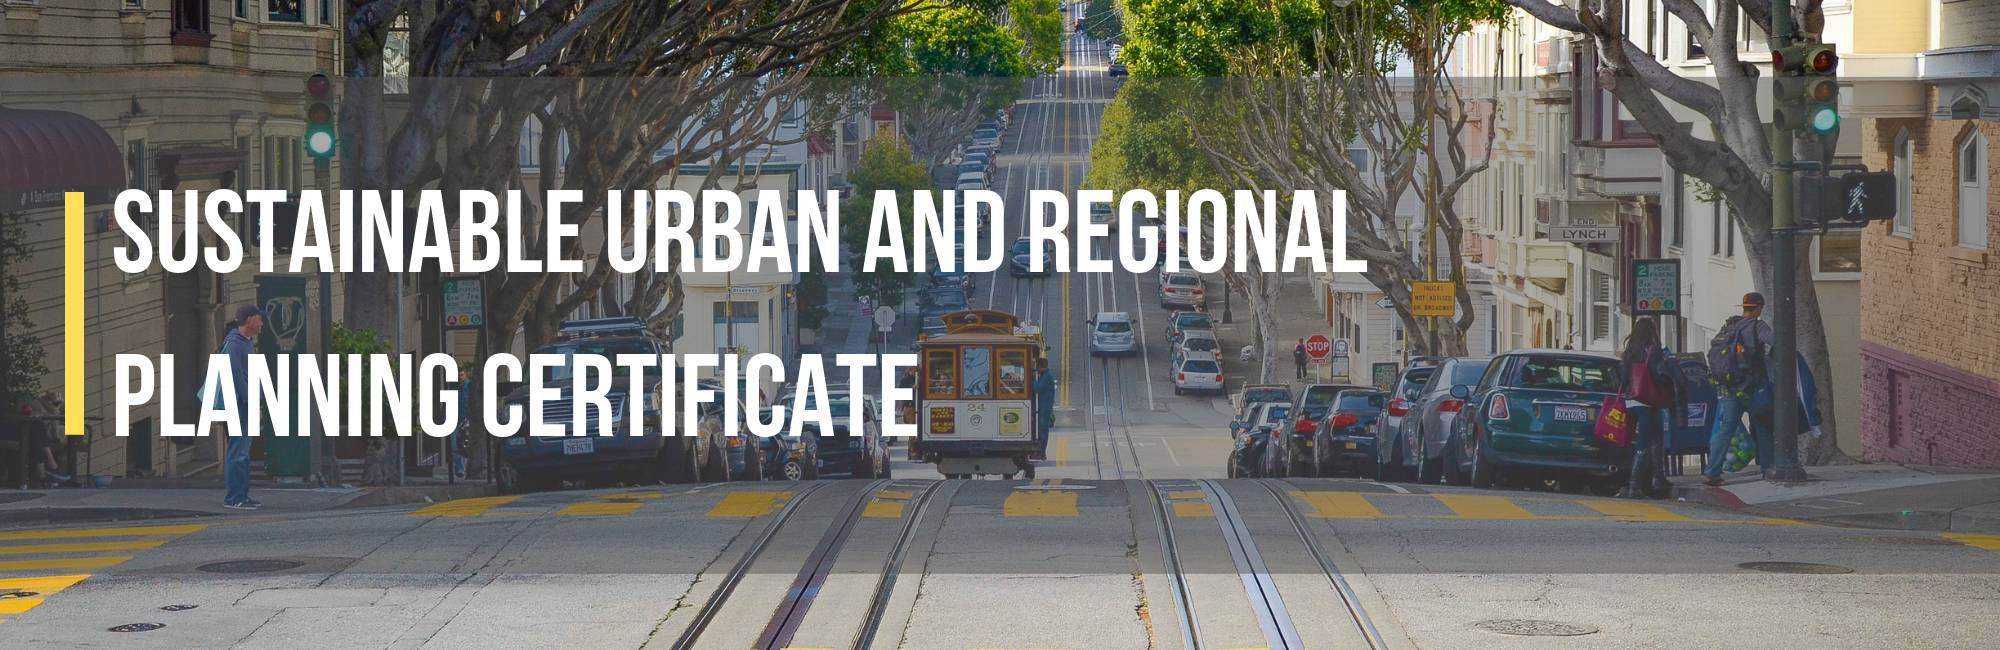 Sustainable Urban and Regional Planning Certificate